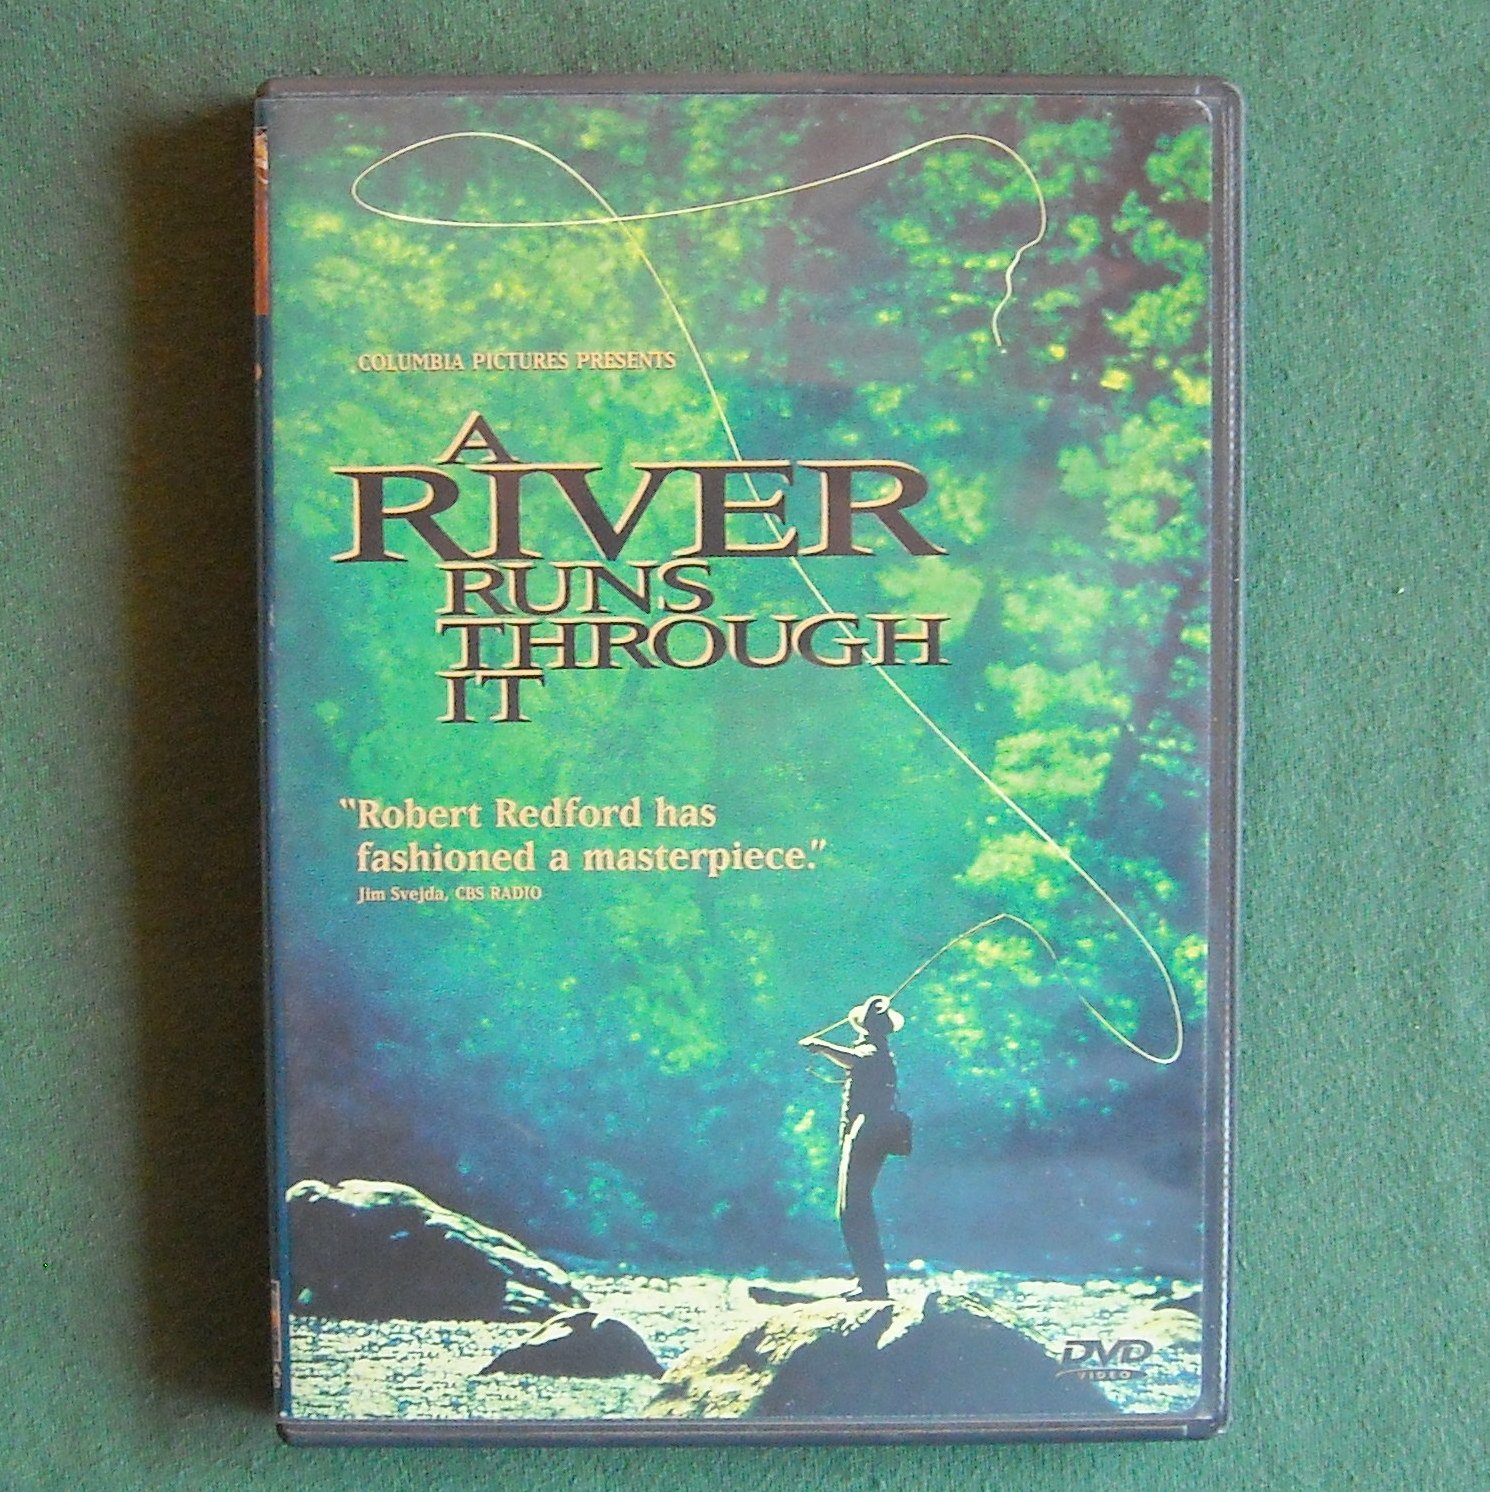 an analysis of the movie a river runs through it by robert redford Audience reviews for a river runs through it this movie is about the youth and young adulthood of two brothers - set in the mountains of montana - with fly fishing as a major component robert .